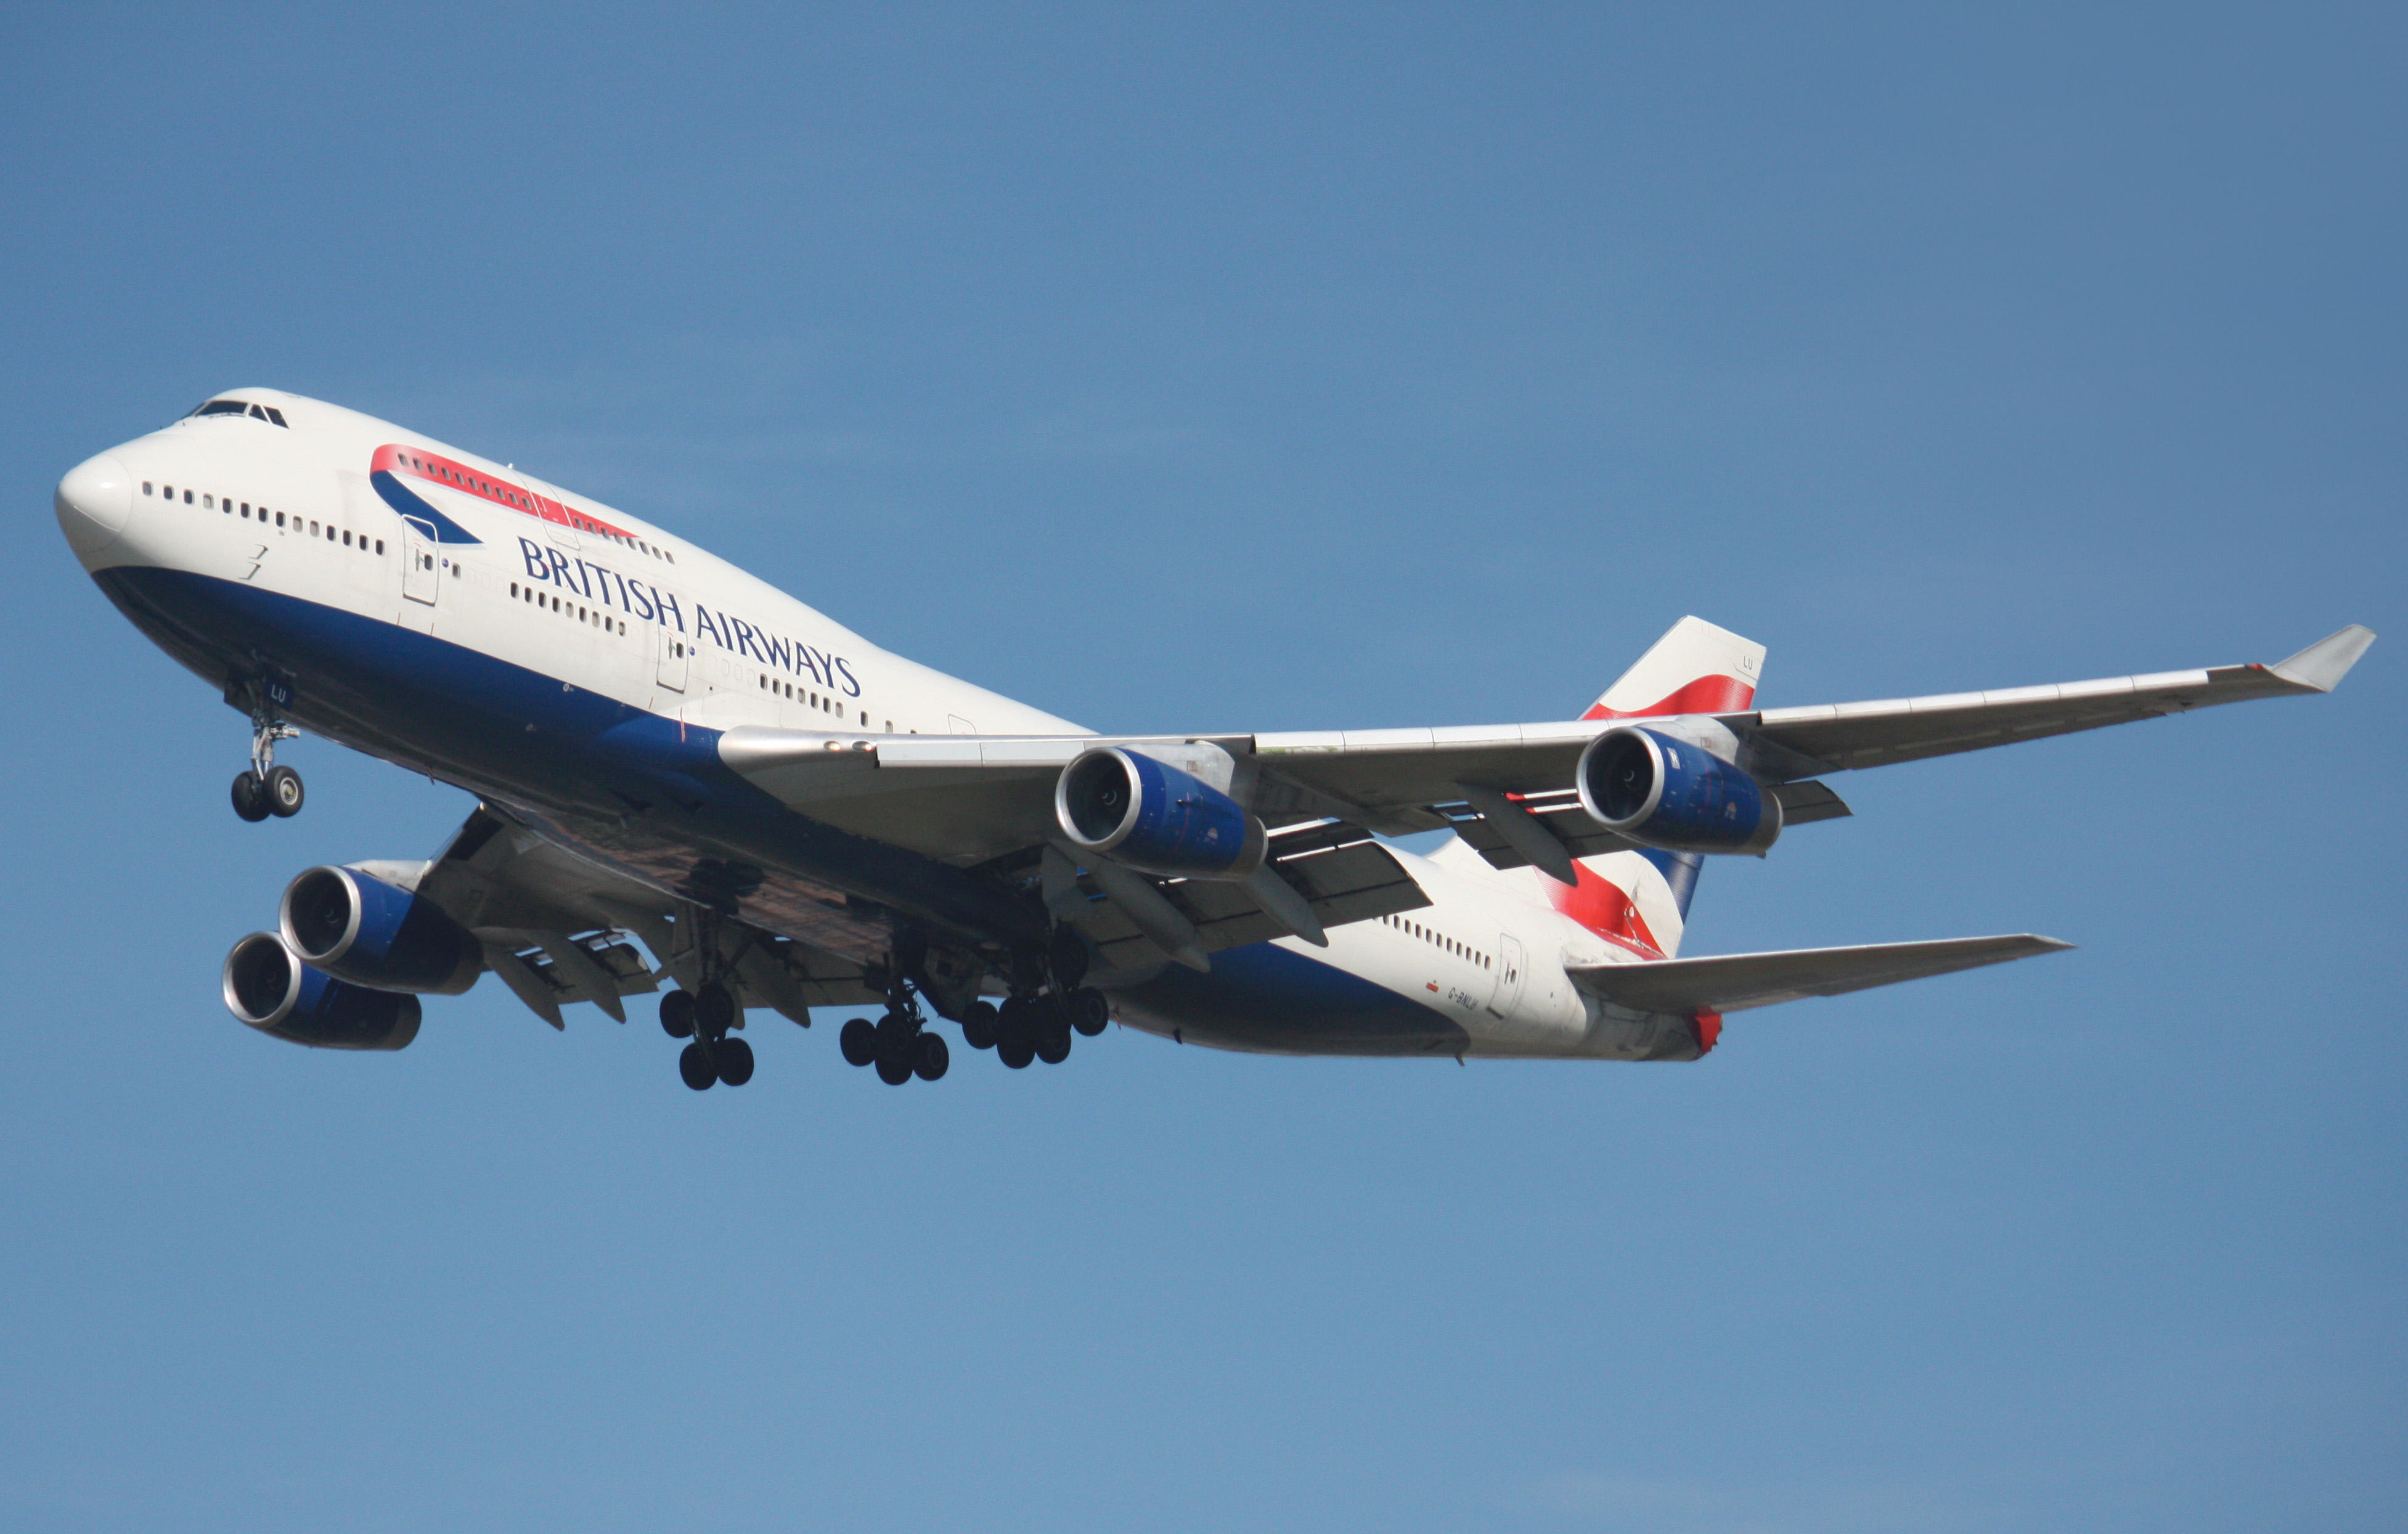 En Boeing 747-400 fra British Airways. Foto: Makaristos